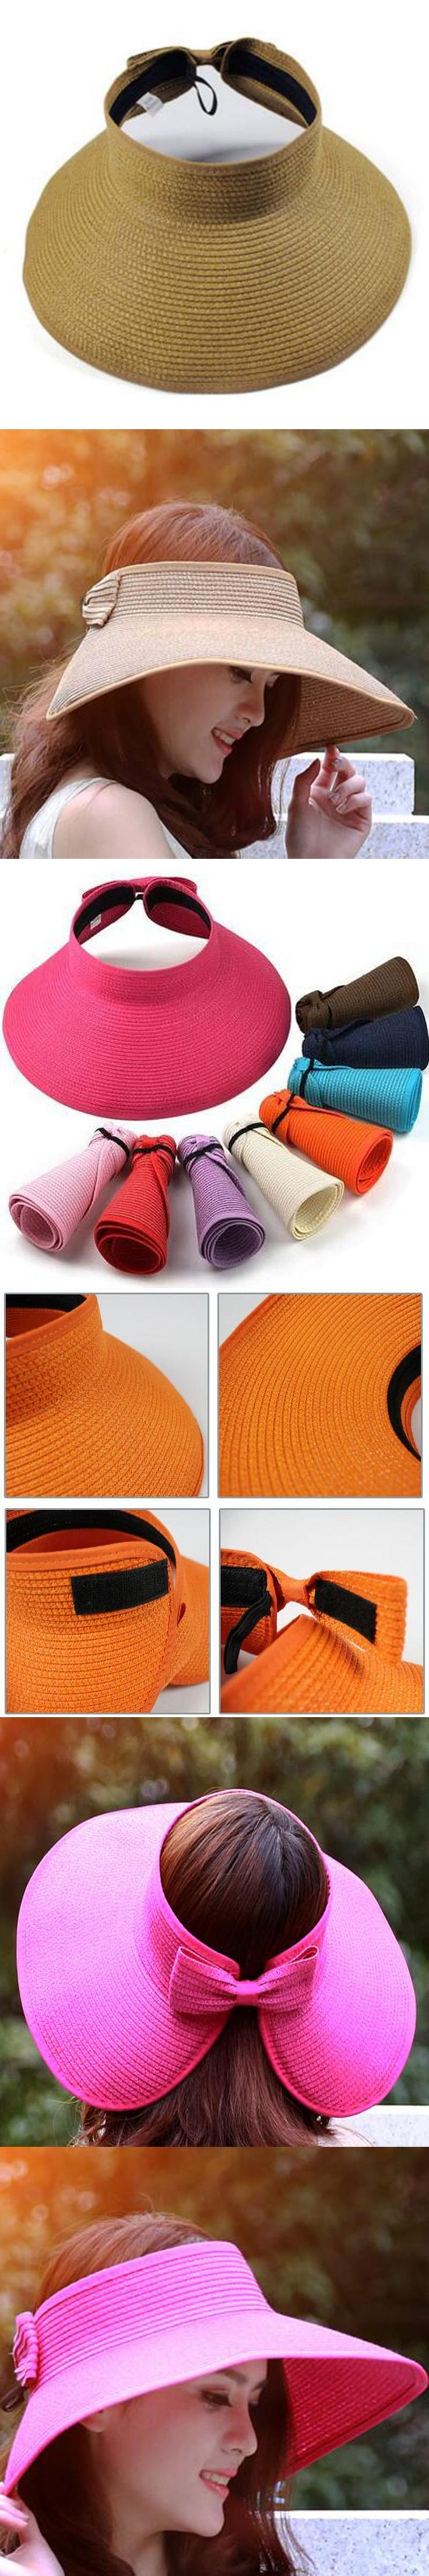 Hot Elegant Women Lady Foldable Roll Up Sun Hat Beach Bow-knot Wide Brim Straw Visor Hat Round Gorras Summer Female Accessory